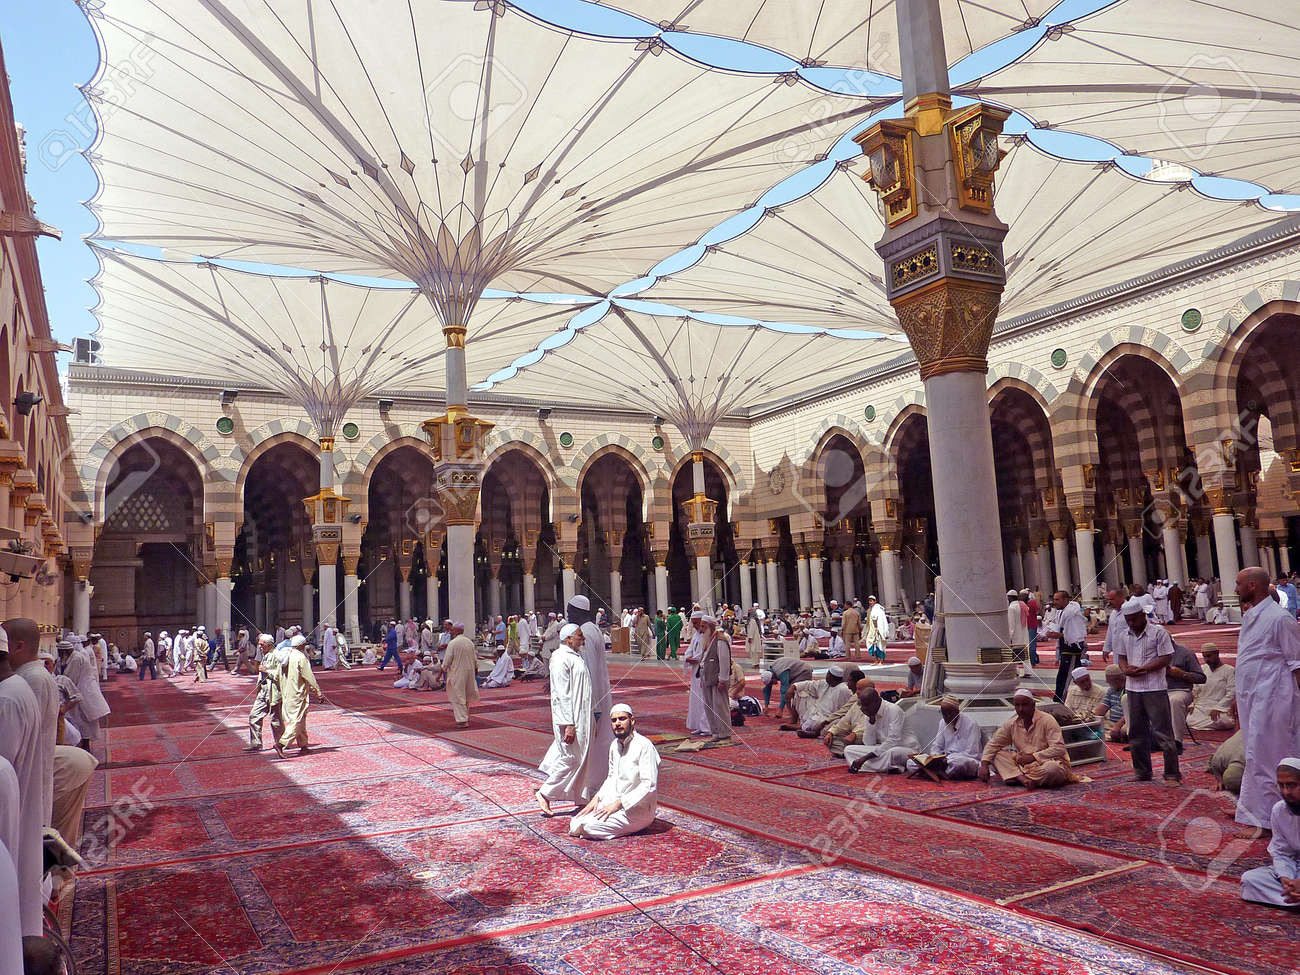 nabawi mosque medina saudi arabia stock photo picture and royalty